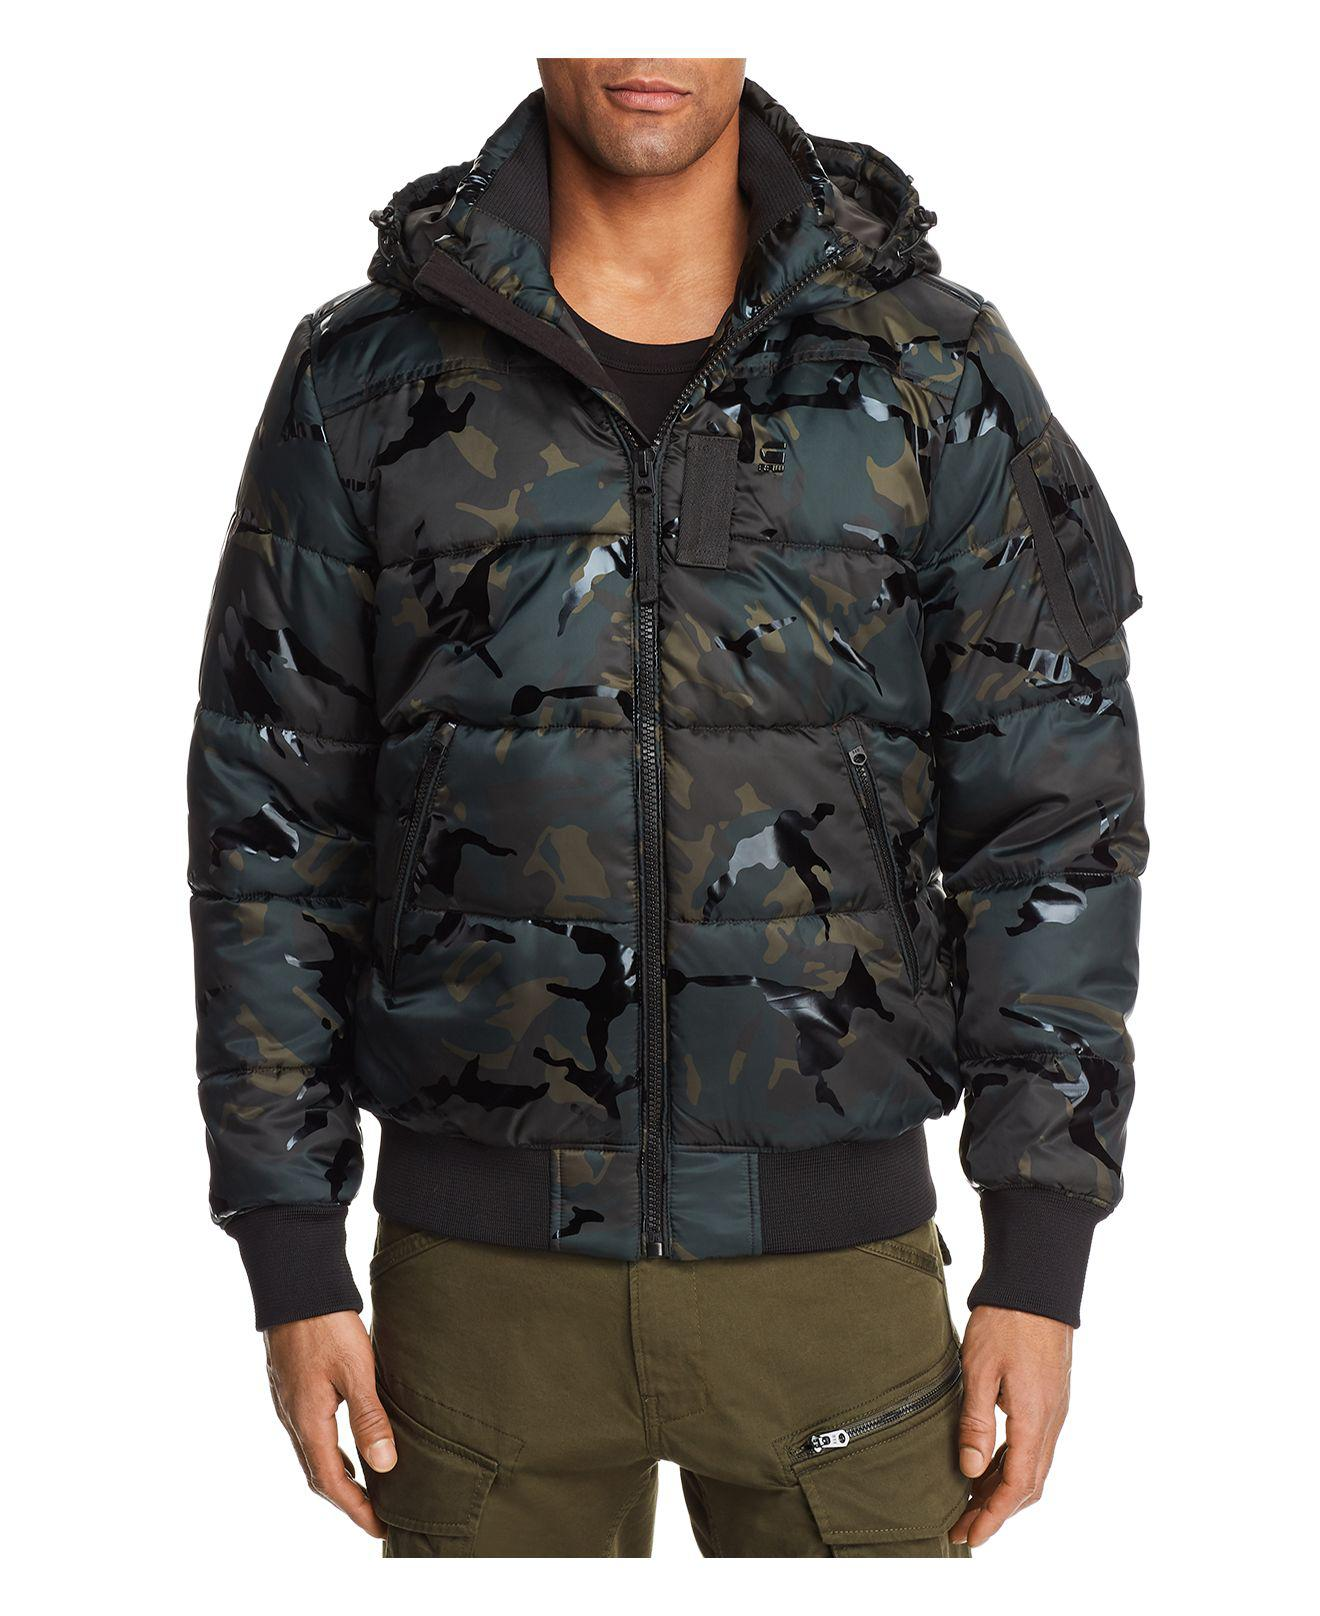 g star raw whisler camouflage hooded bomber jacket in black for men lyst. Black Bedroom Furniture Sets. Home Design Ideas